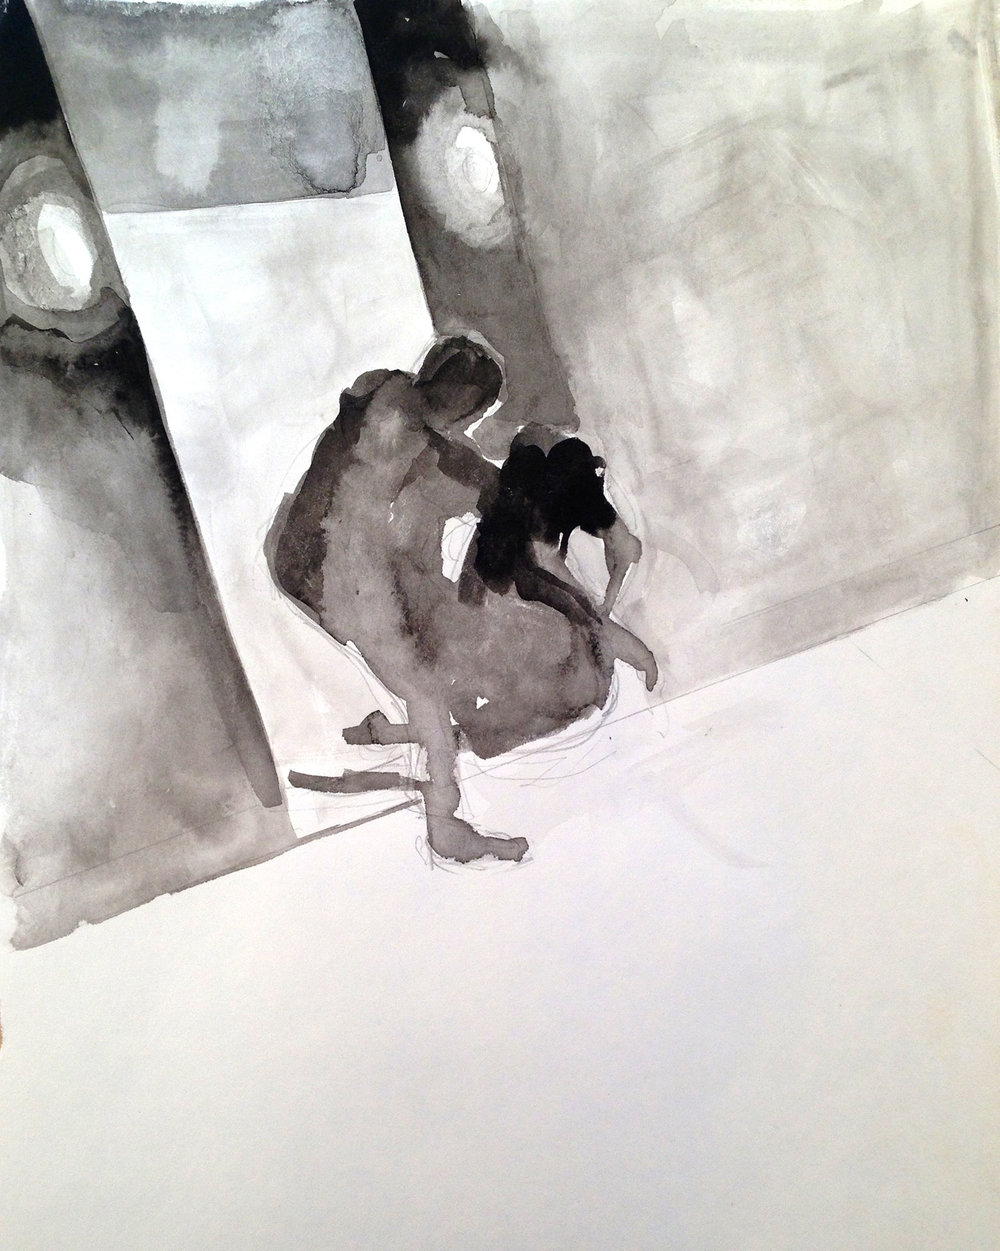 ELEVATOR 2, 2014, 9 X 12 INCHES, INK ON PAPER